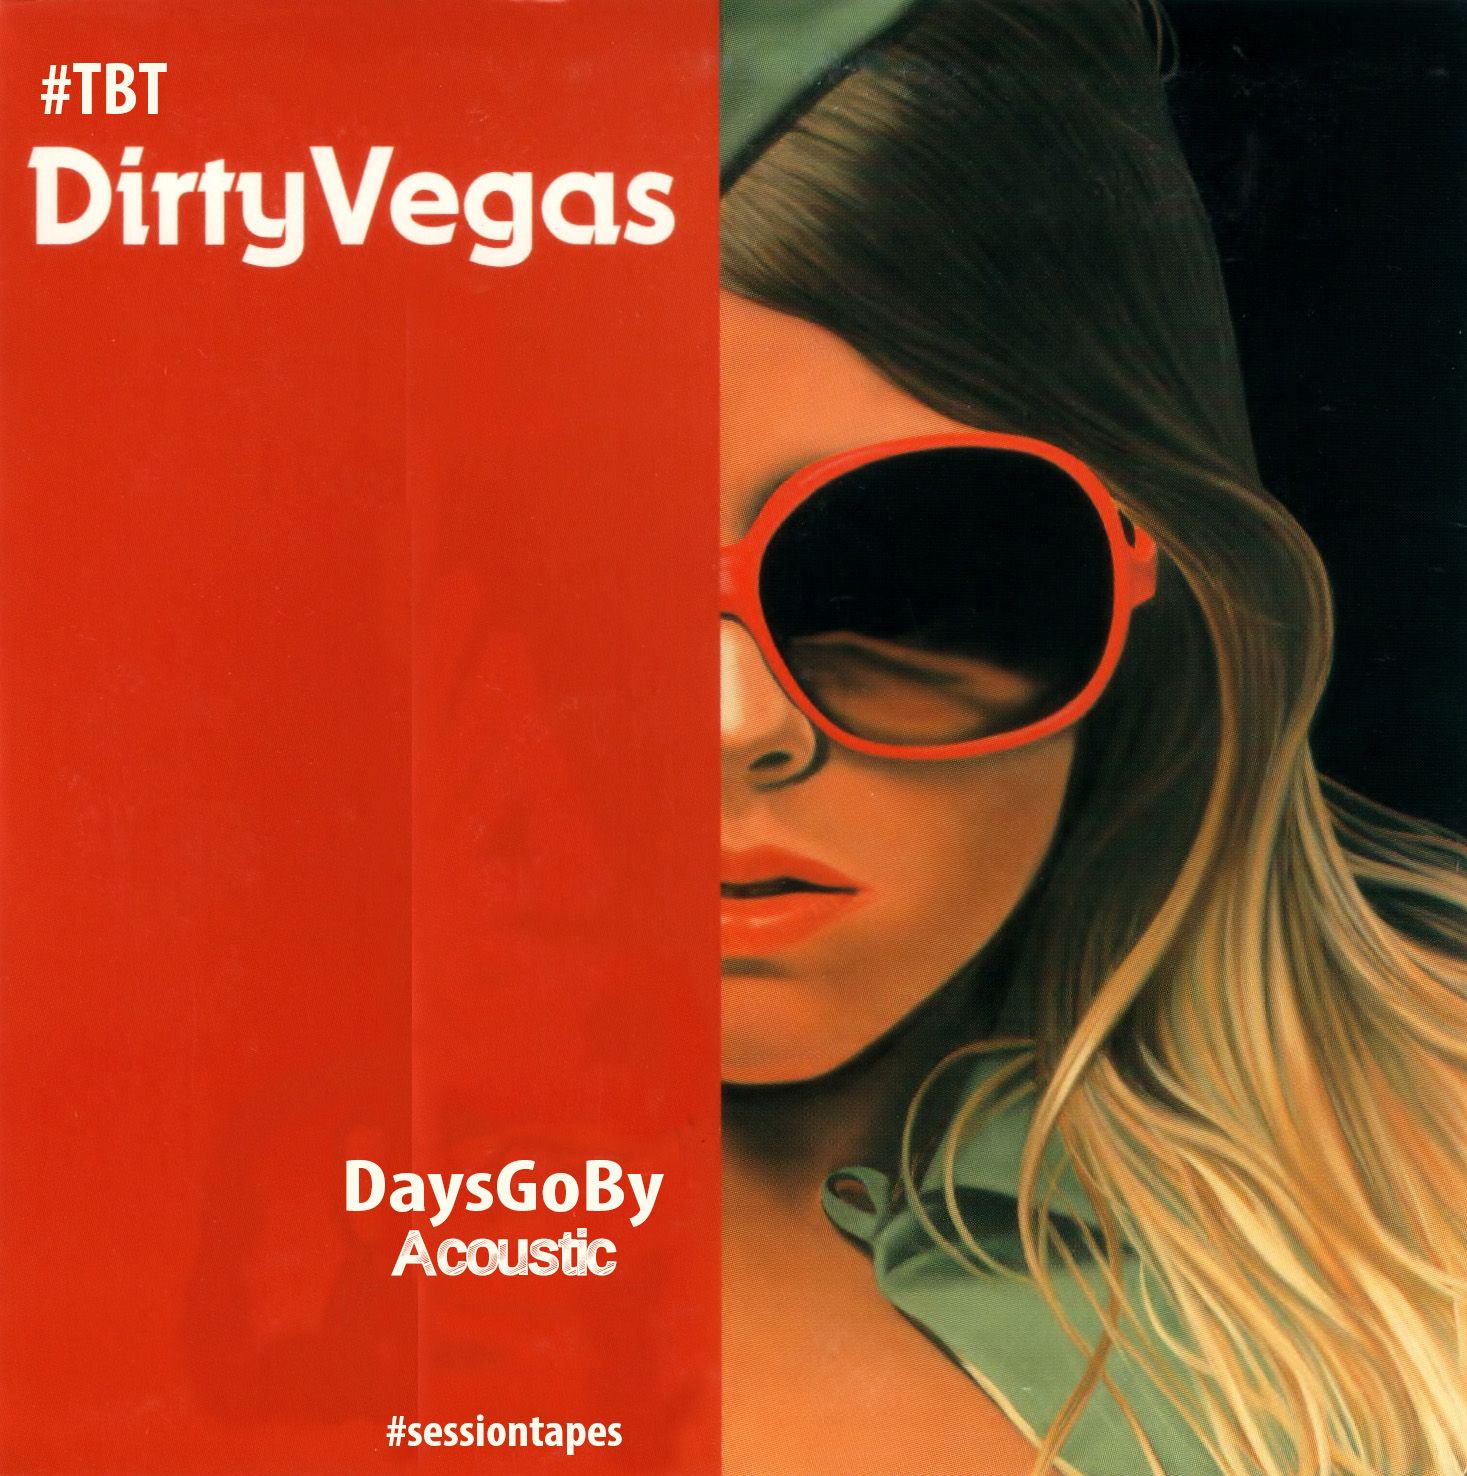 Dirty Vegas – Days Go By (Acoustic) #TBT